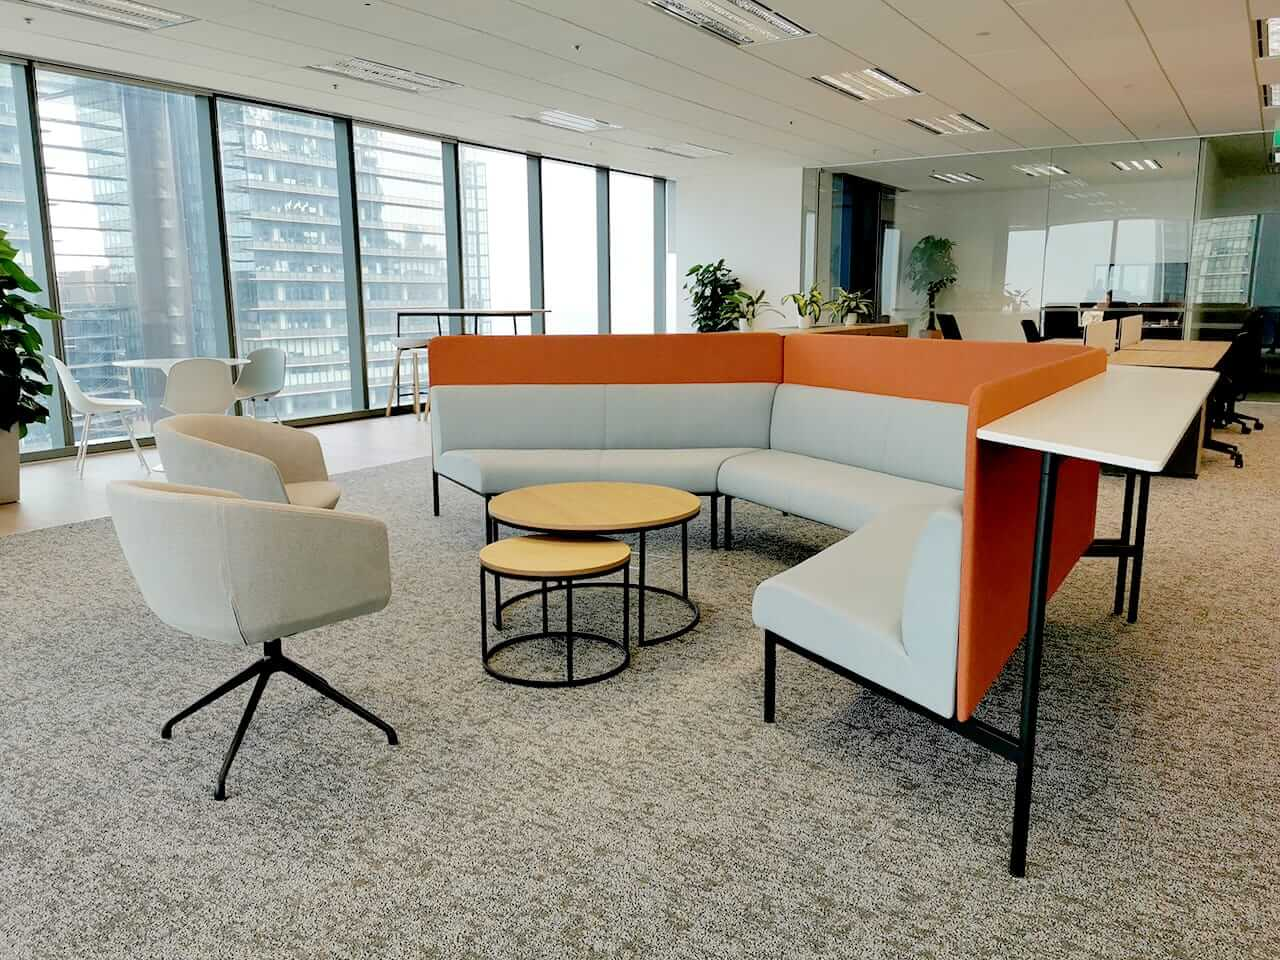 High Back Sofas Suitable for Work Discussions - Comfort Furniture